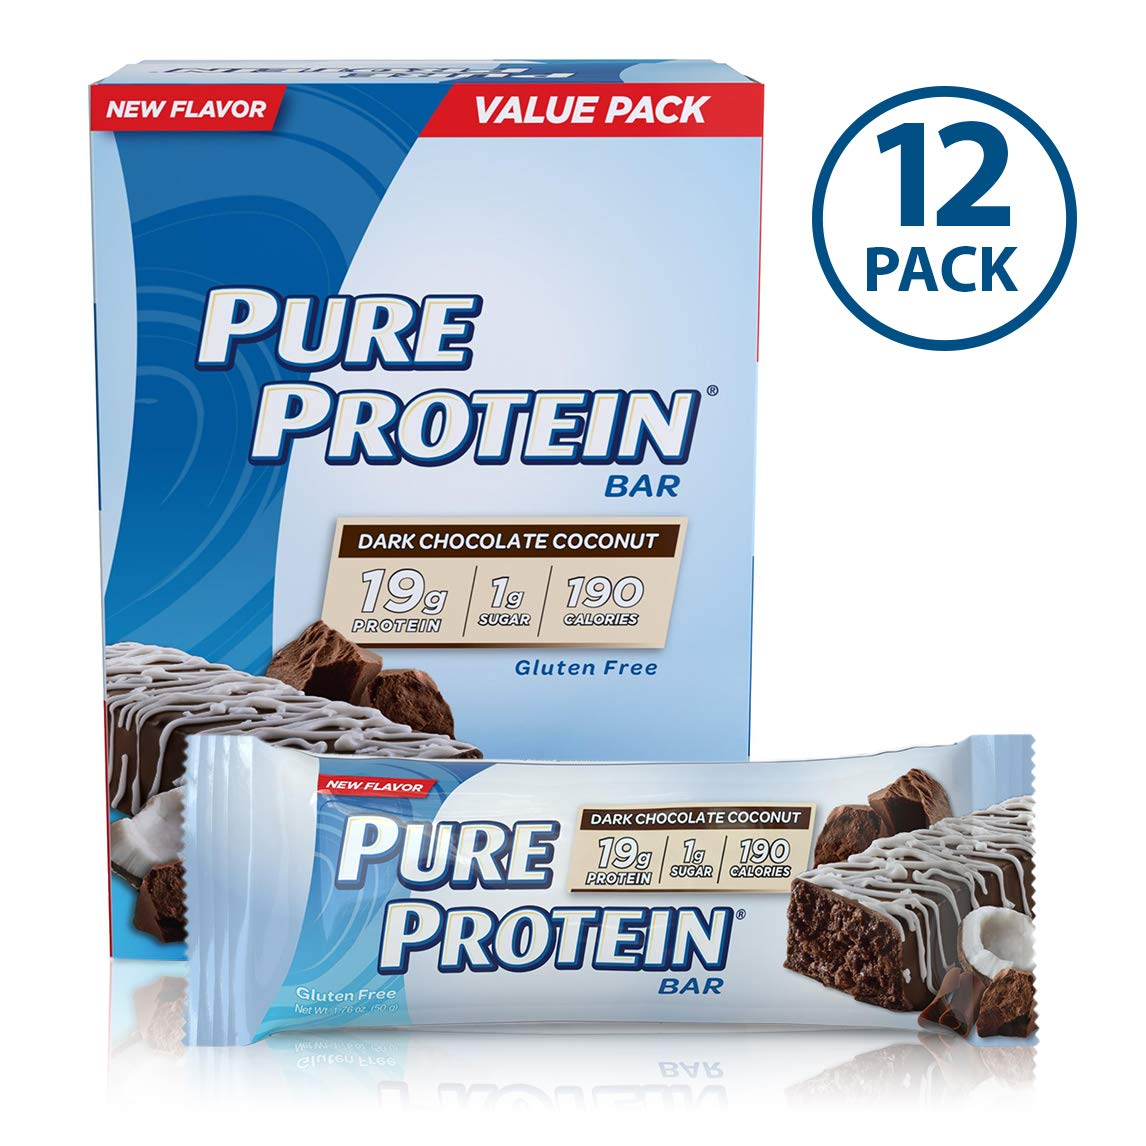 Pure Protein Bars, High Protein, Nutritious Snacks to Support Energy, Low Sugar, Gluten Free, Dark Chocolate Coconut, 1.76oz, 12 Pack by Pure Protein